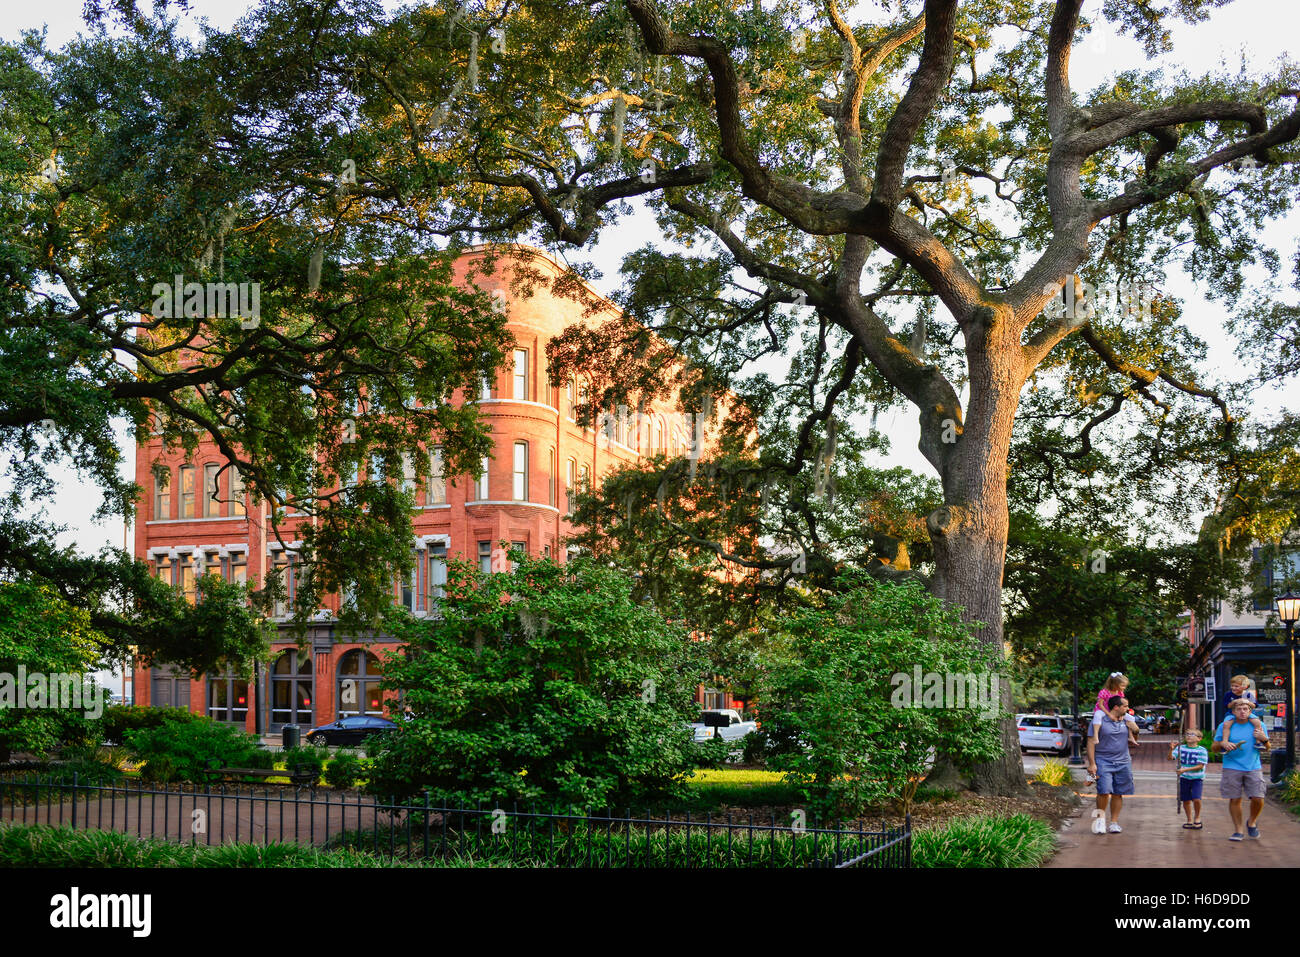 Family enjoys the stroll near Savannah College of Art and Design's Romanesque Revival Style Posetter Hall shrouded Stock Photo